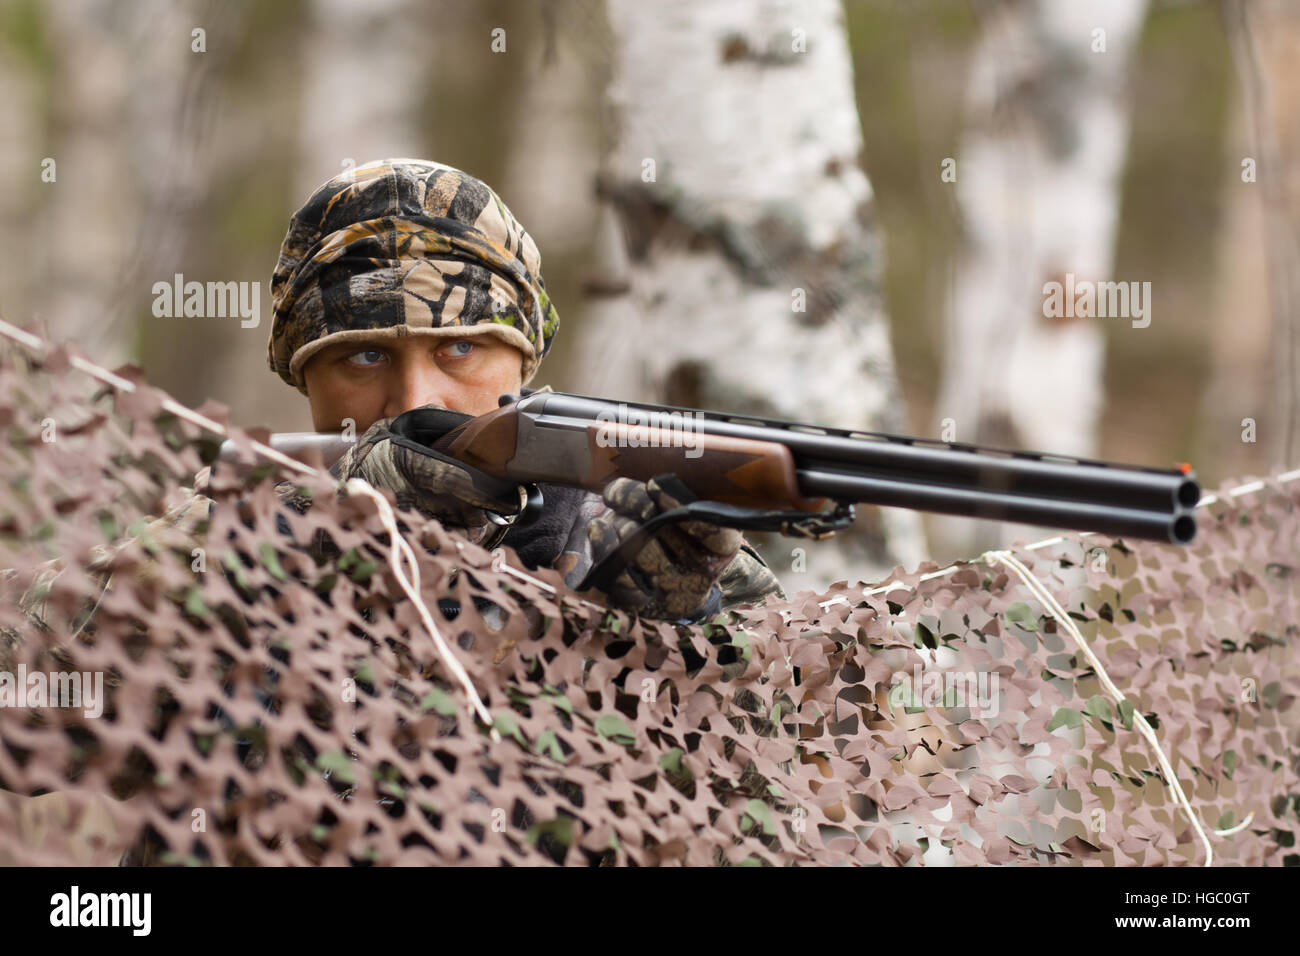 hunter aiming from behind camouflage netting - Stock Image